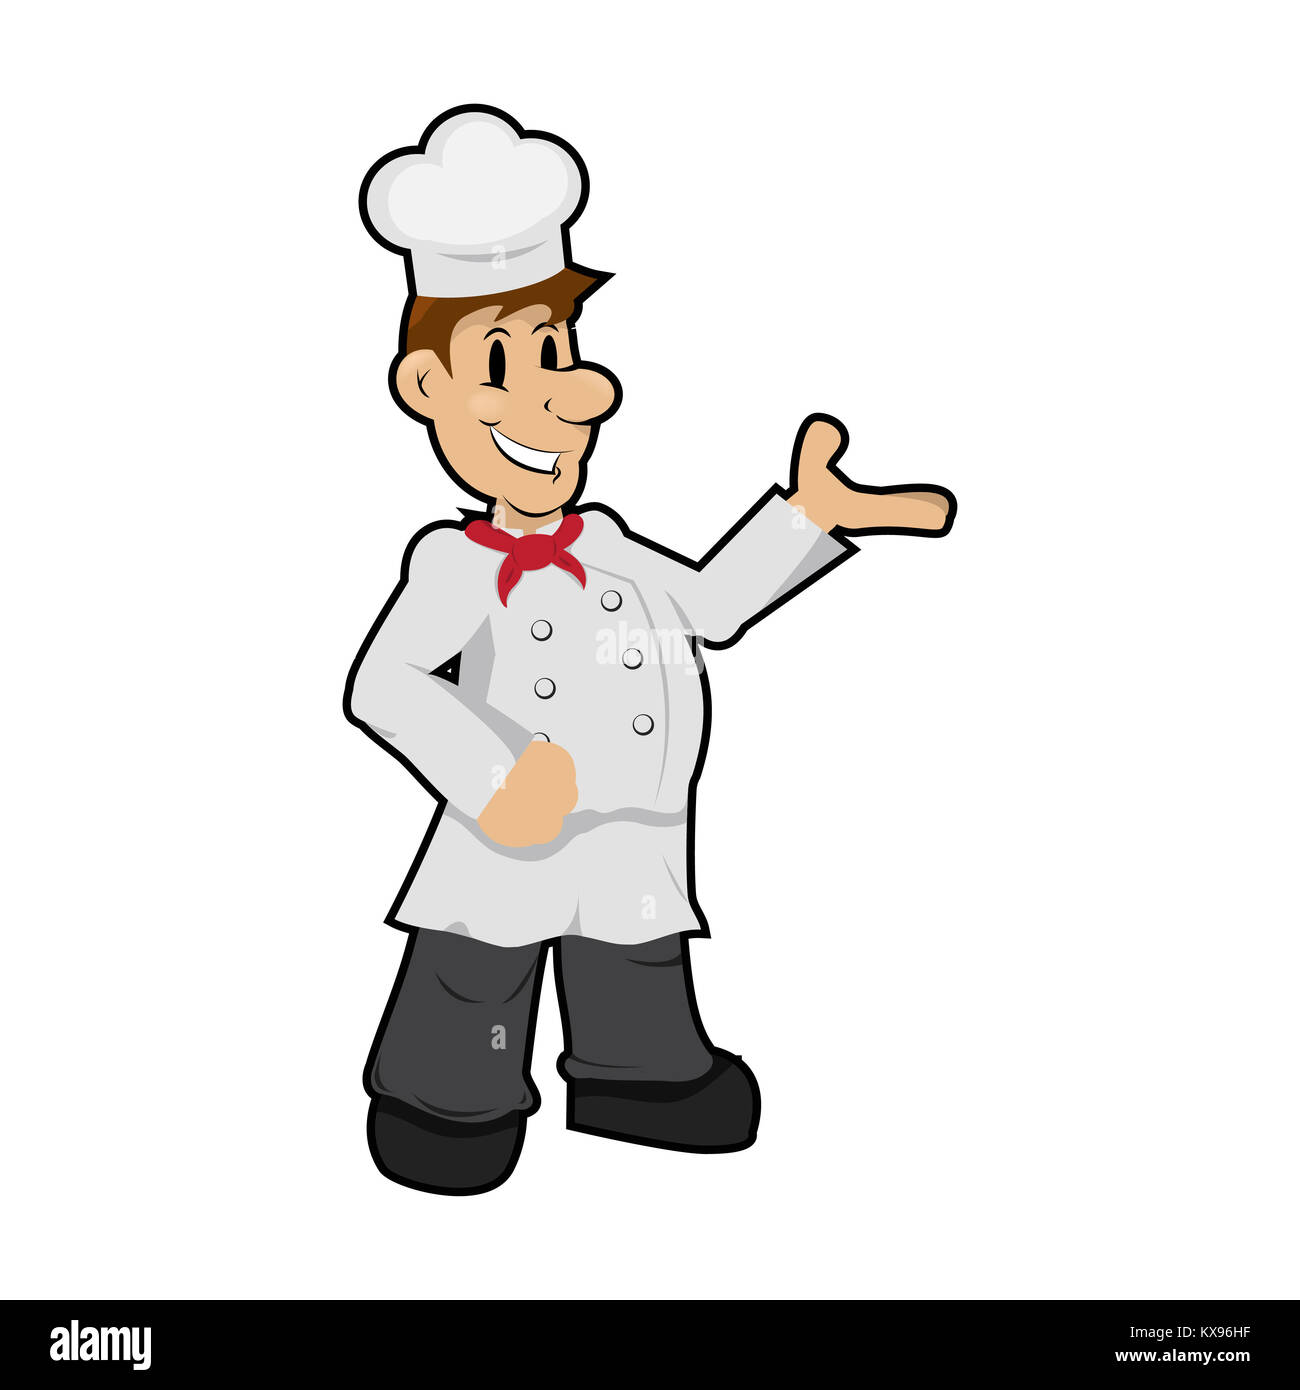 chef vector Stock Photo  171077131 - Alamy 6ffc6a140c0f